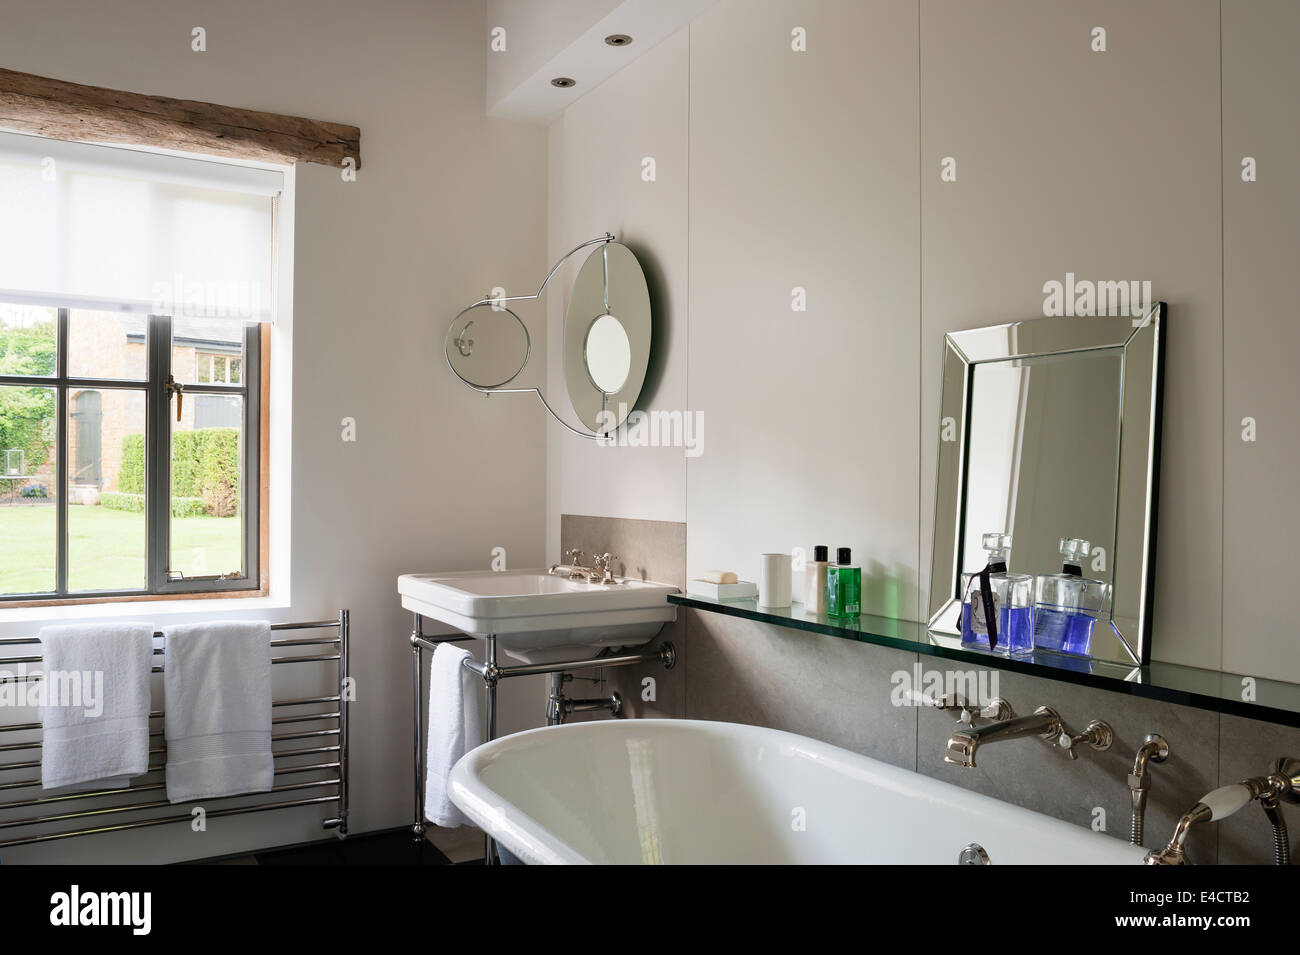 Roll top bath in white bathroom with glass shelf and mirrors - Stock Image